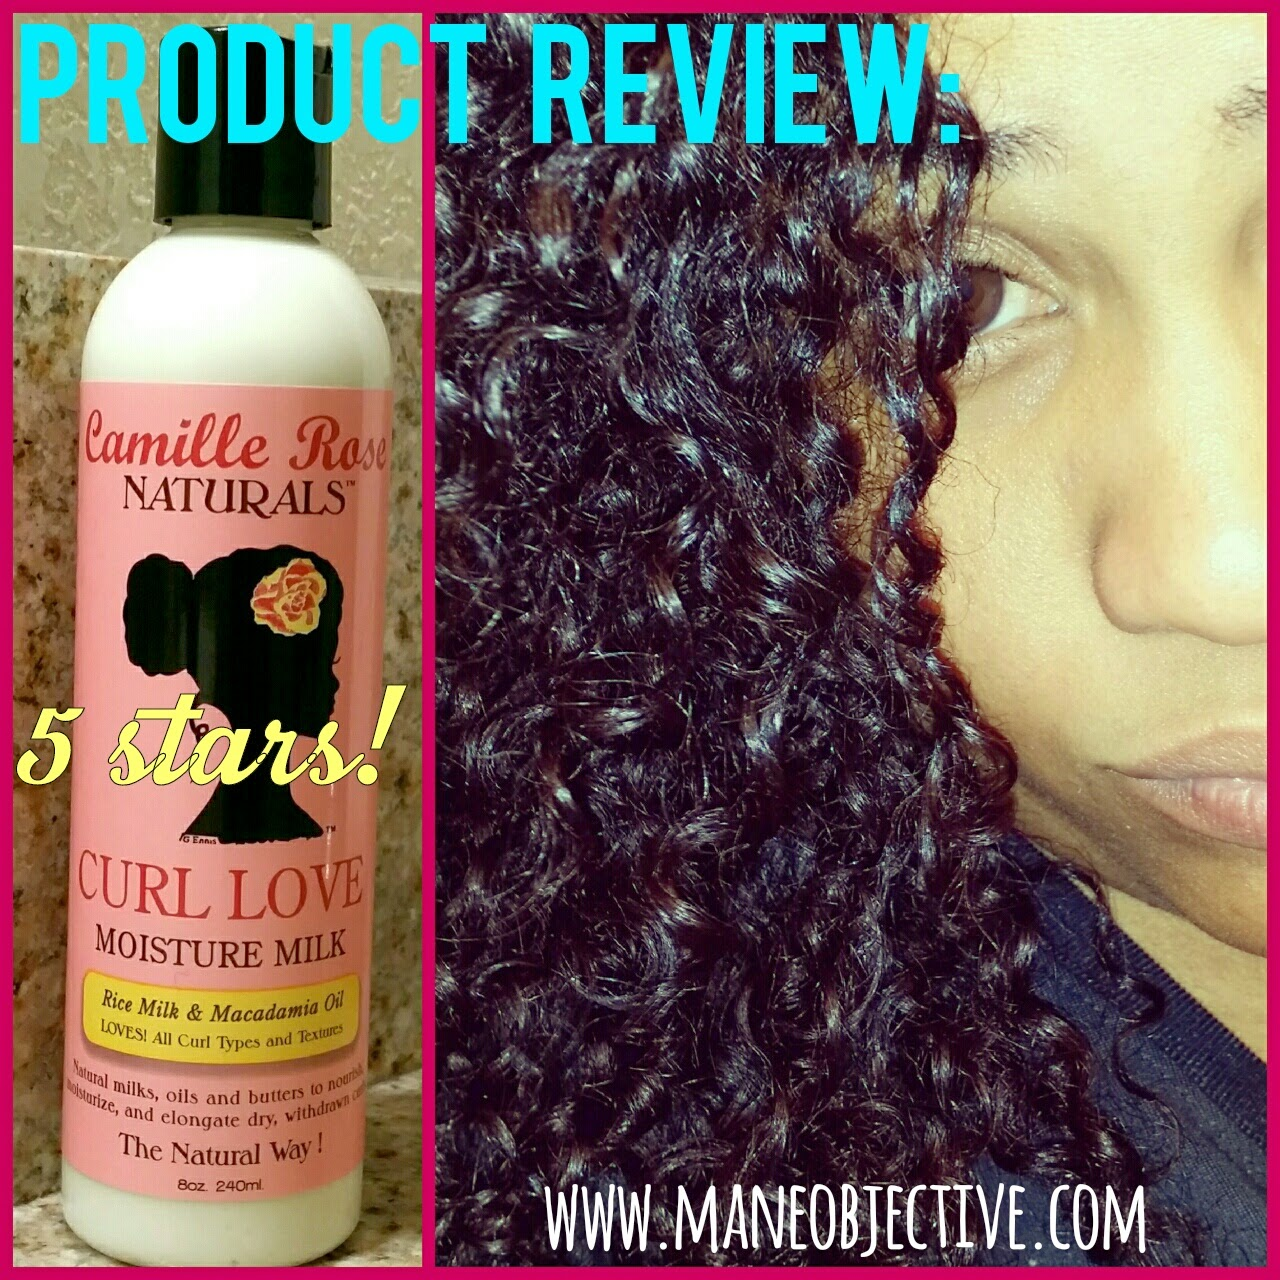 Product Review Camille Rose Naturals Curl Love Moisture Milk